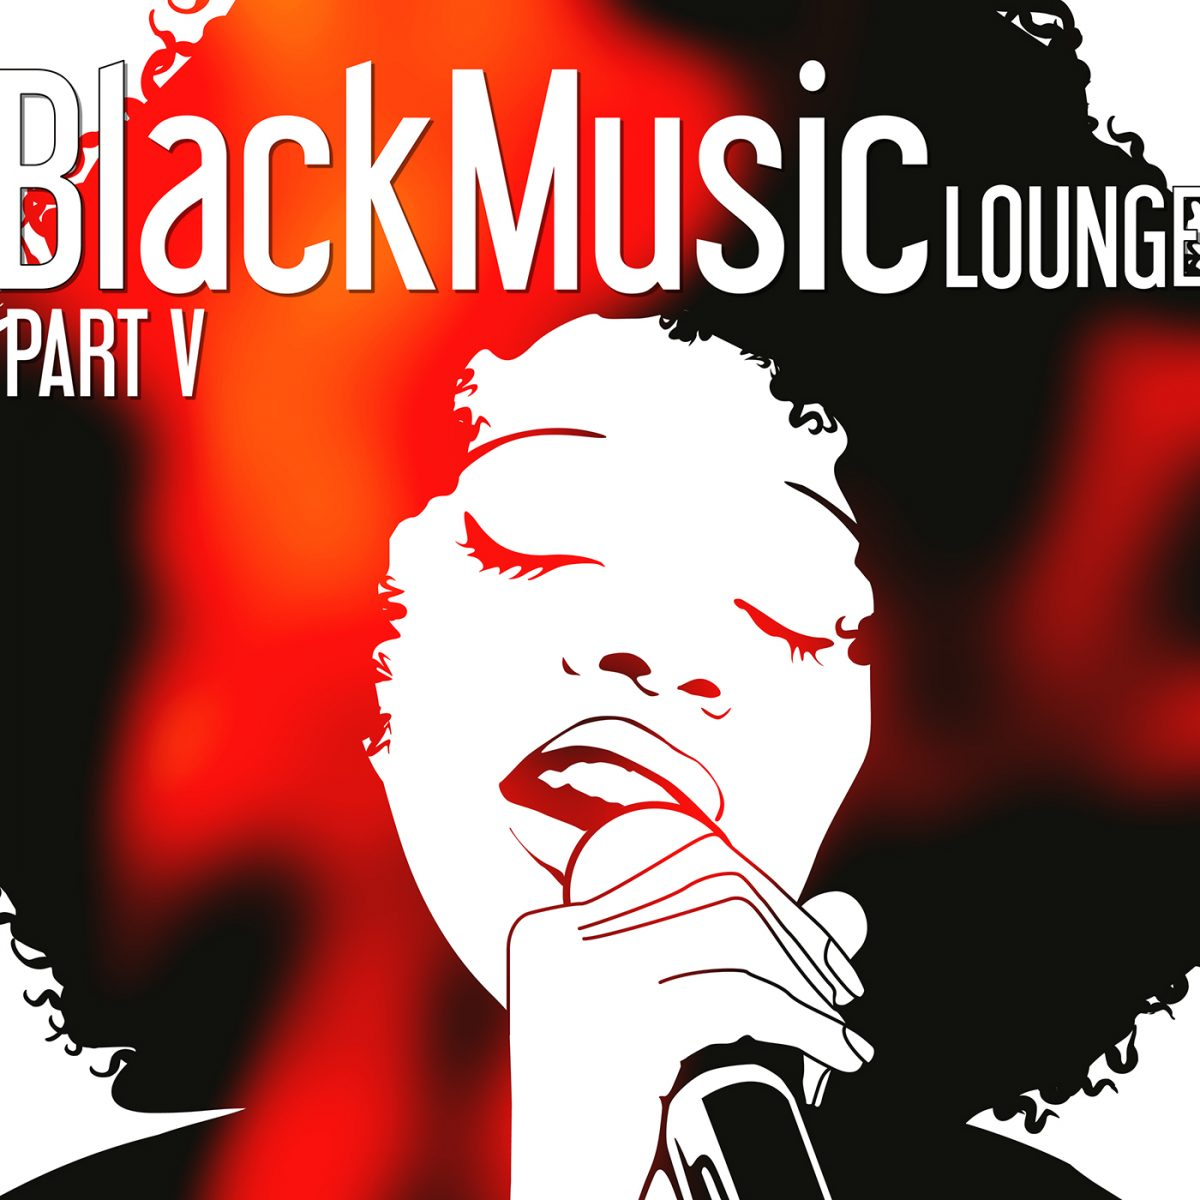 soul music chill lounge blackmusic rb